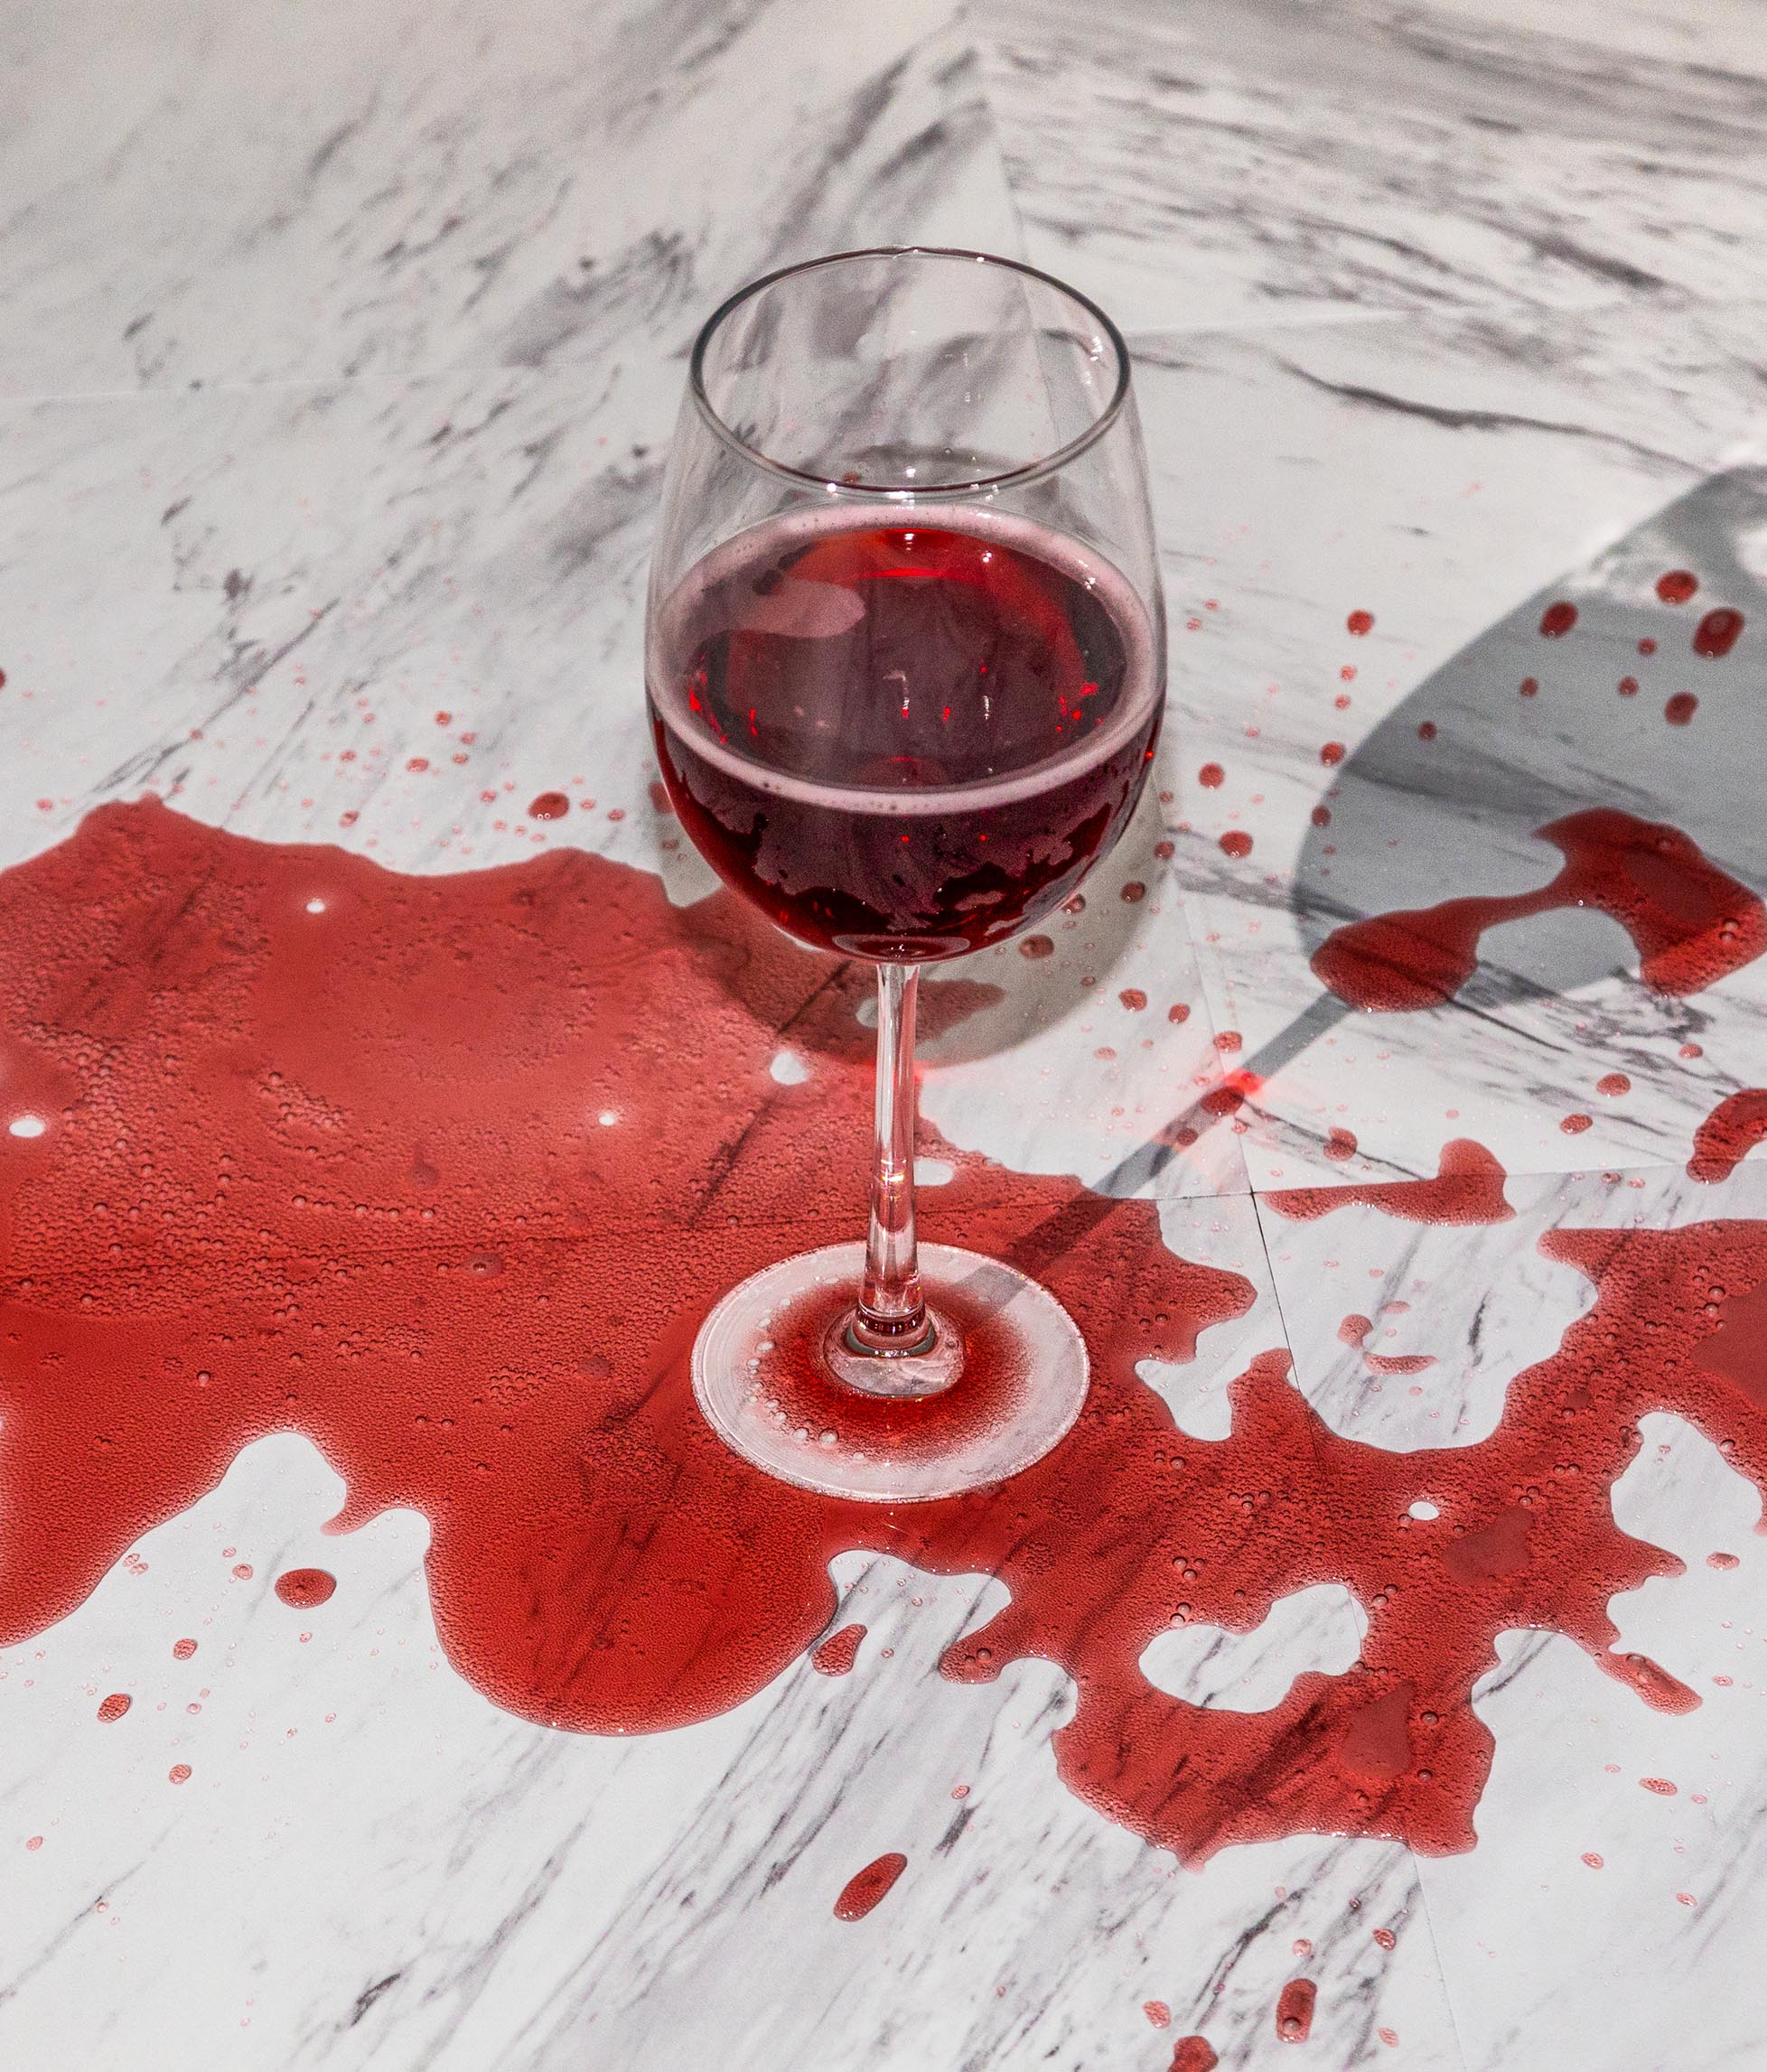 Red wine spilled over glass.